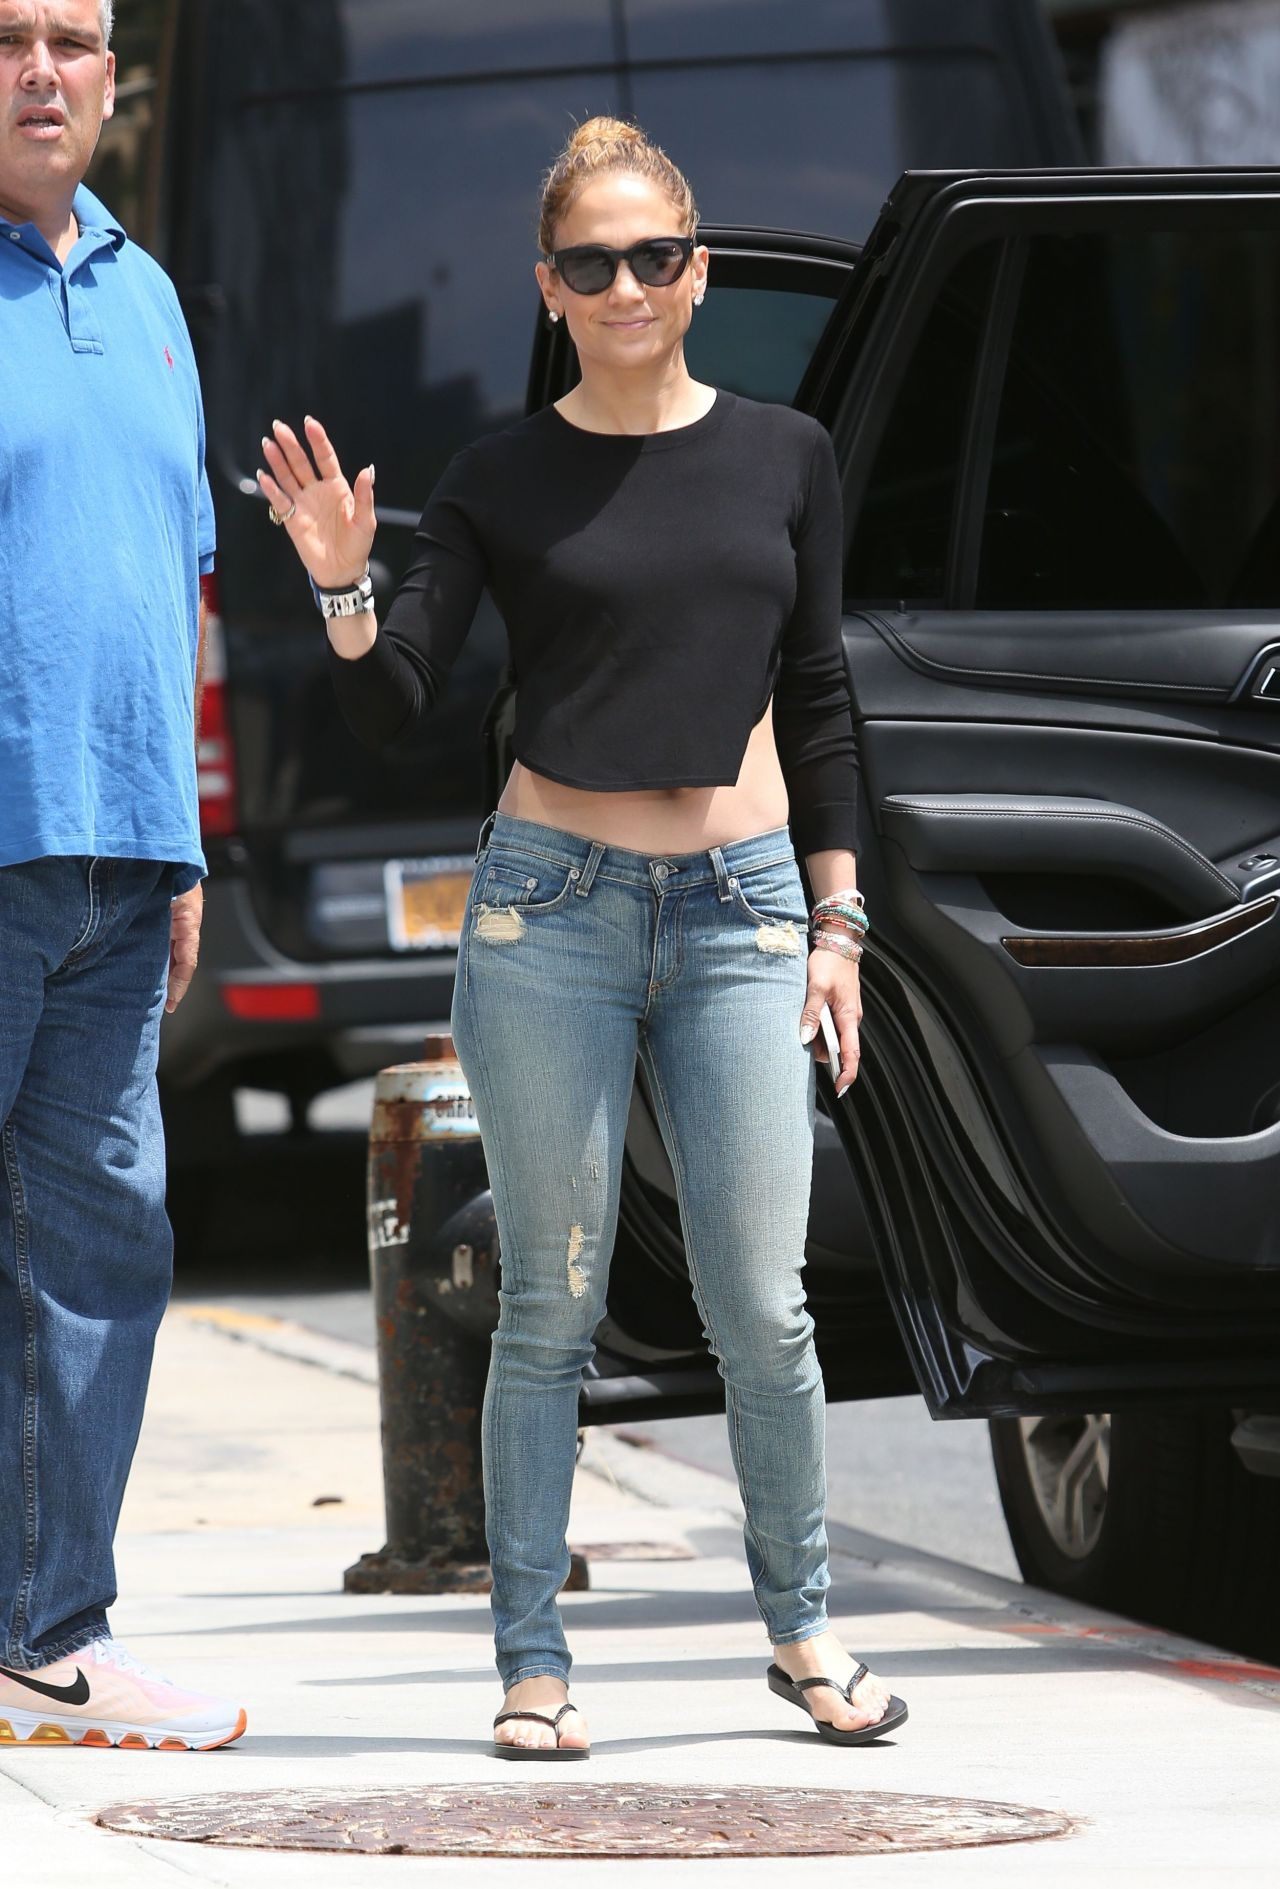 Jennifer Lopez Booty In Jeans Out In New York City